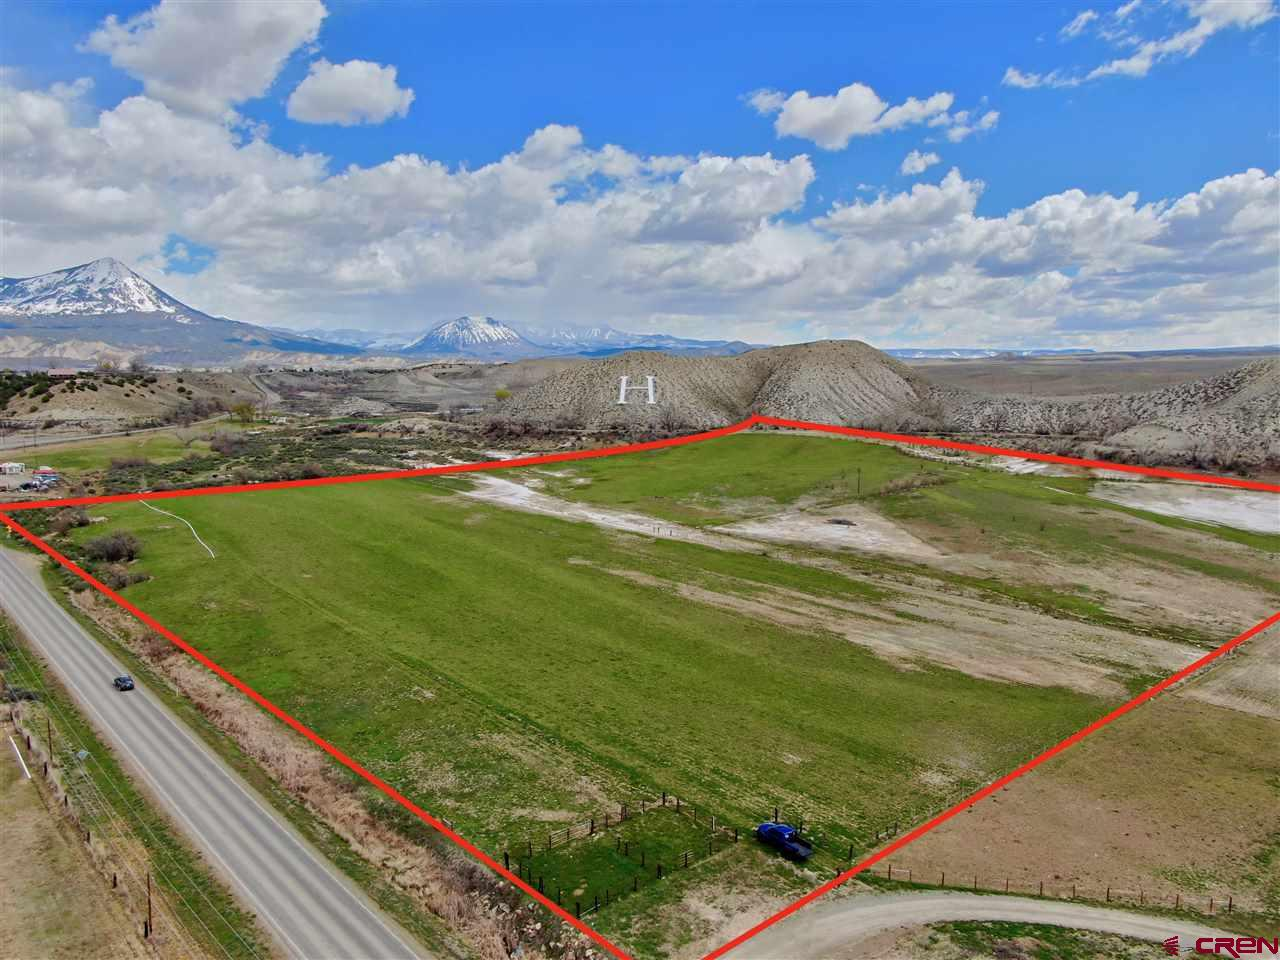 Development or Farm and Ranch Property in Hotchkiss, Colorado For Sale. 30 acres of Agricultural property with extensive development potential, situated just inside the city limits of Hotchkiss. Identified as one of the expansion areas for the town of Hotchkiss, Colorado, it comes with 13 shares of the Short Ditch Water Company, one of the most senior water rights in the entire valley.Also includes 1.0 cfs of year-round spring water running on the northern boundary of the property. The Town of Hotchkiss recently extended water and sewer lines to serve this location, anticipating future growth in this identified expansion area, making this is a prime location for future development. In the meanwhile, the property can continue in its agricultural use, guaranteeing low taxes in the interim. The acreage is adjacent to BLM lands to the South. With the Western Slope ofColorado expanding rapidly, development areas and housing are becoming a looming concern. The appeal of the lifestyle offered in the North Fork Valley draws many, from the beautiful orchards and vineyards to the outdoor recreational draws off ishing, hunting, four wheeling, mountain biking, snowmobiling, or cross country skiing, the North Fork Valley has it all.The town of Hotchkiss has identified areas of expansion for the growing town. This parcel is identified in the expansion area.With no development currently on the property, this is a premiere property in a prime location. Less than a 1/2 mile from town limits, and less than a mile from Hotchkiss High School. New ILC survey from July of 2017. Great development or agricultural property, locate a hemp farm or commercial facility here, a great location situated between Hotchkiss, Paonia, and Crawford farming and ranching communities.